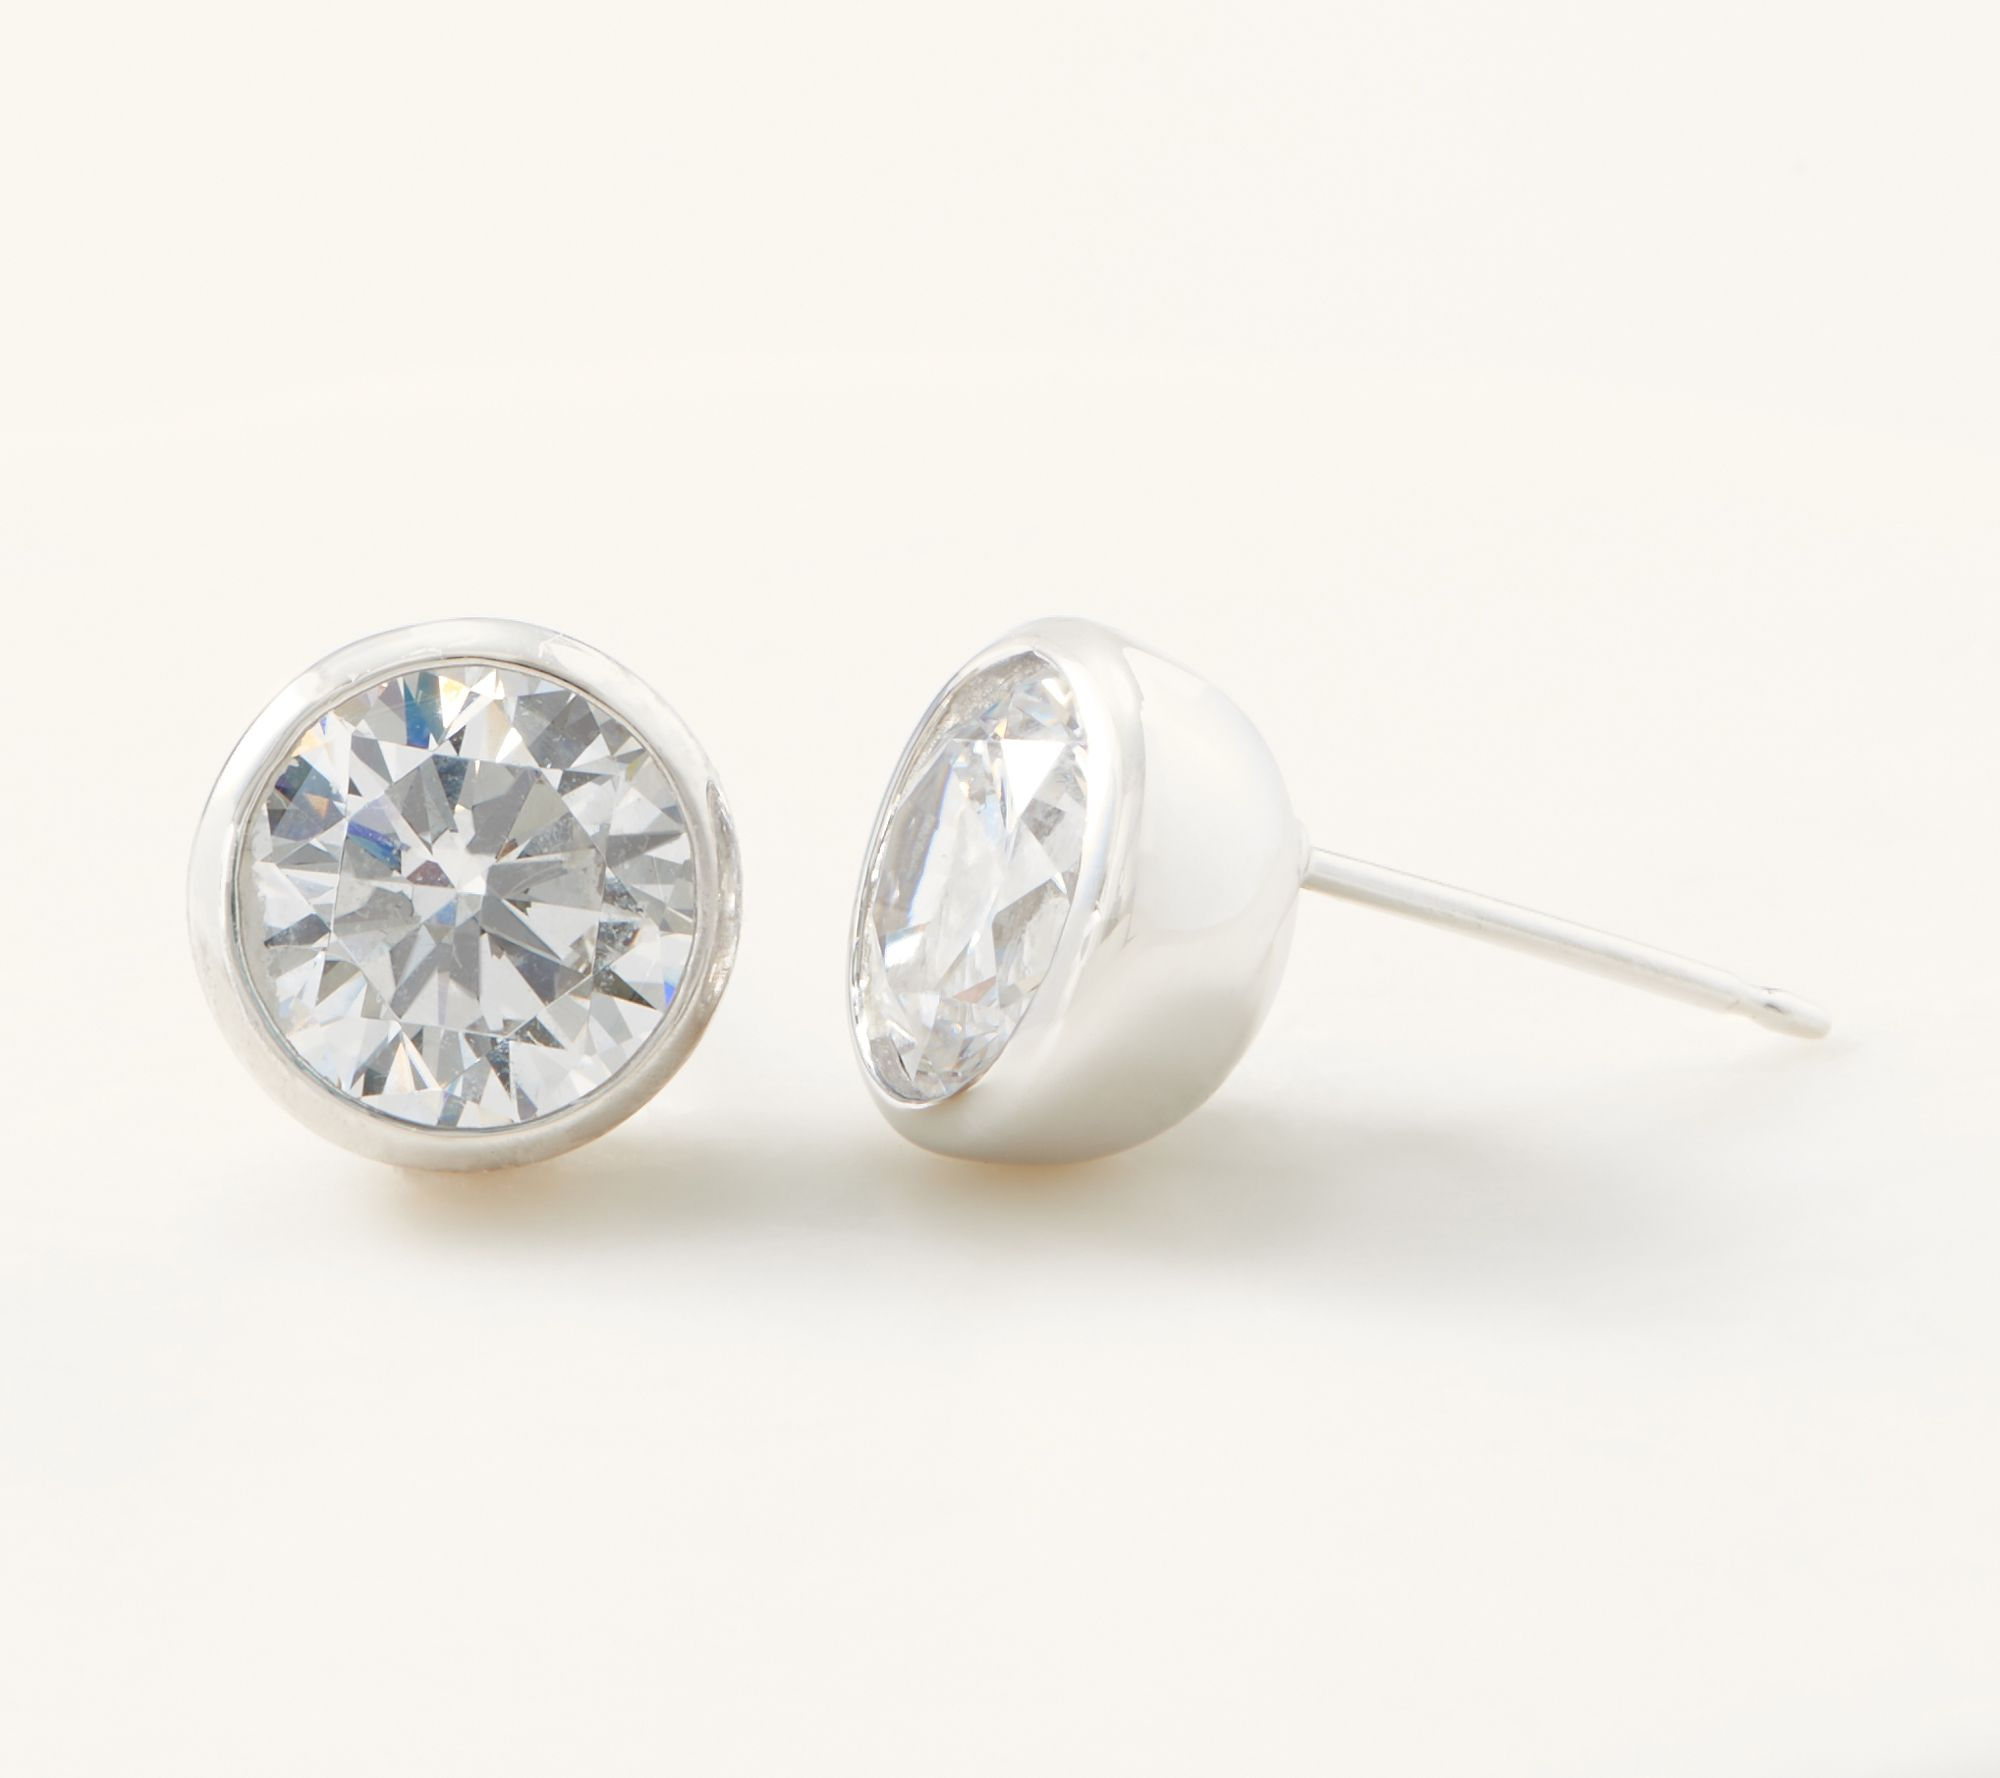 b13cfc0f8 Diamonique 4.00 ct Bezel Set Stud Earrings, Sterling Silver - Page 1 — QVC .com